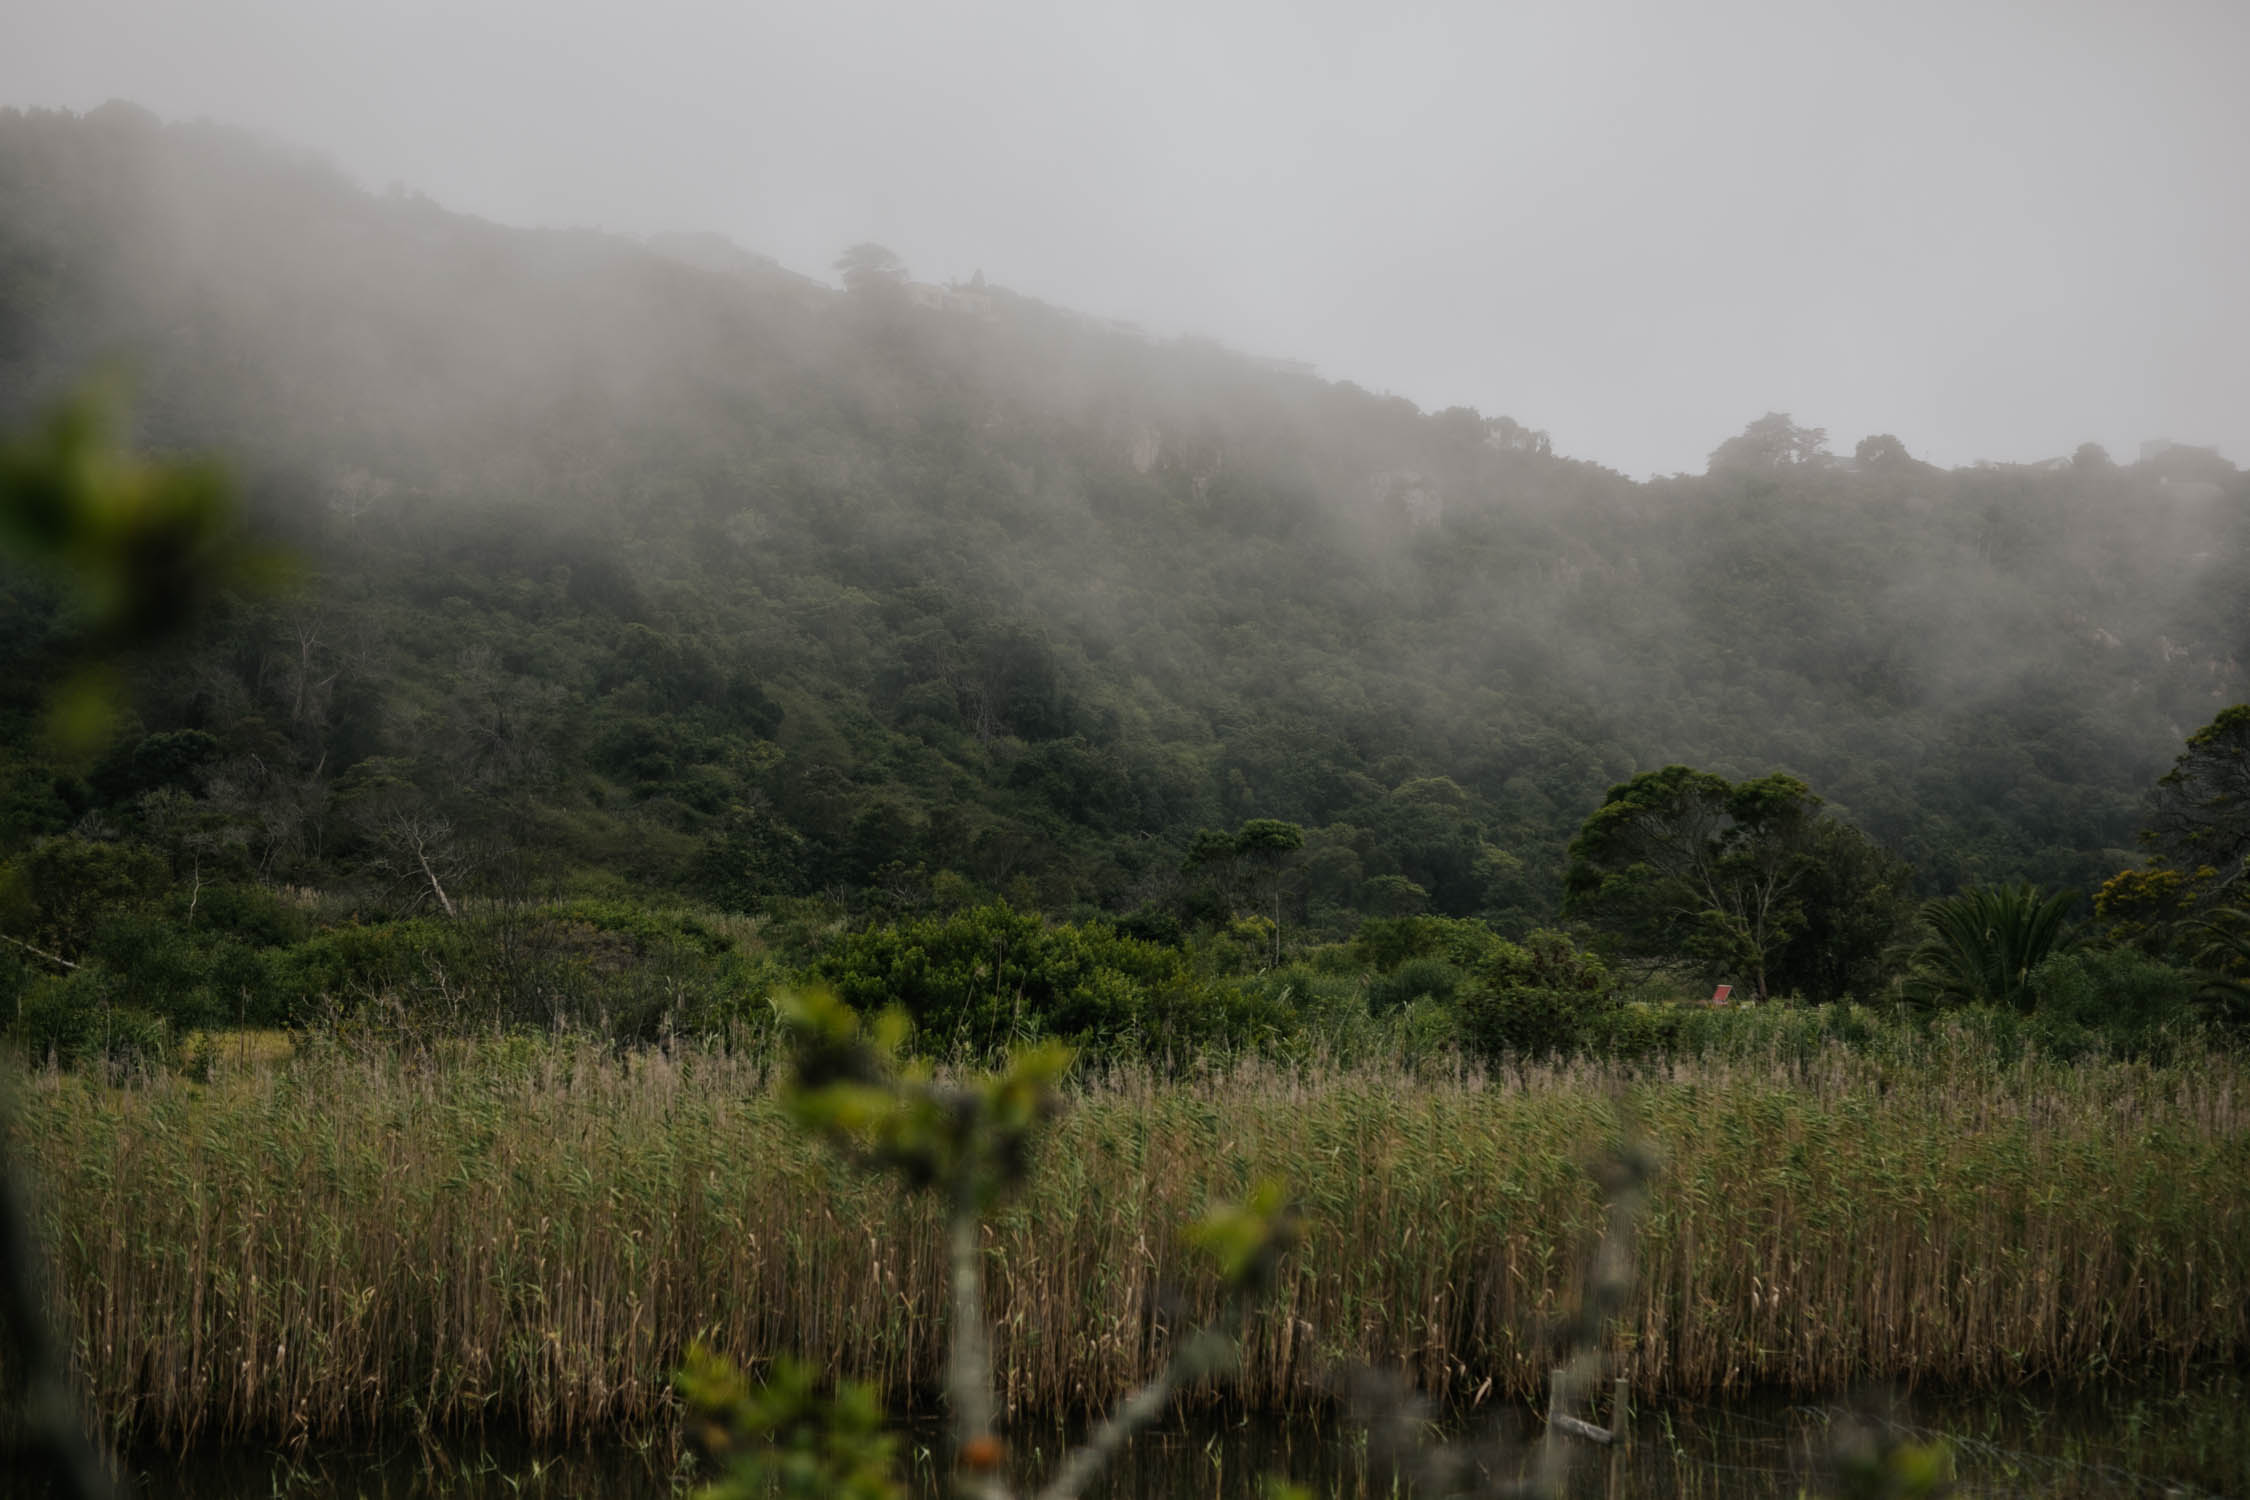 Mist on the Piesang River in Plettenberg Bay